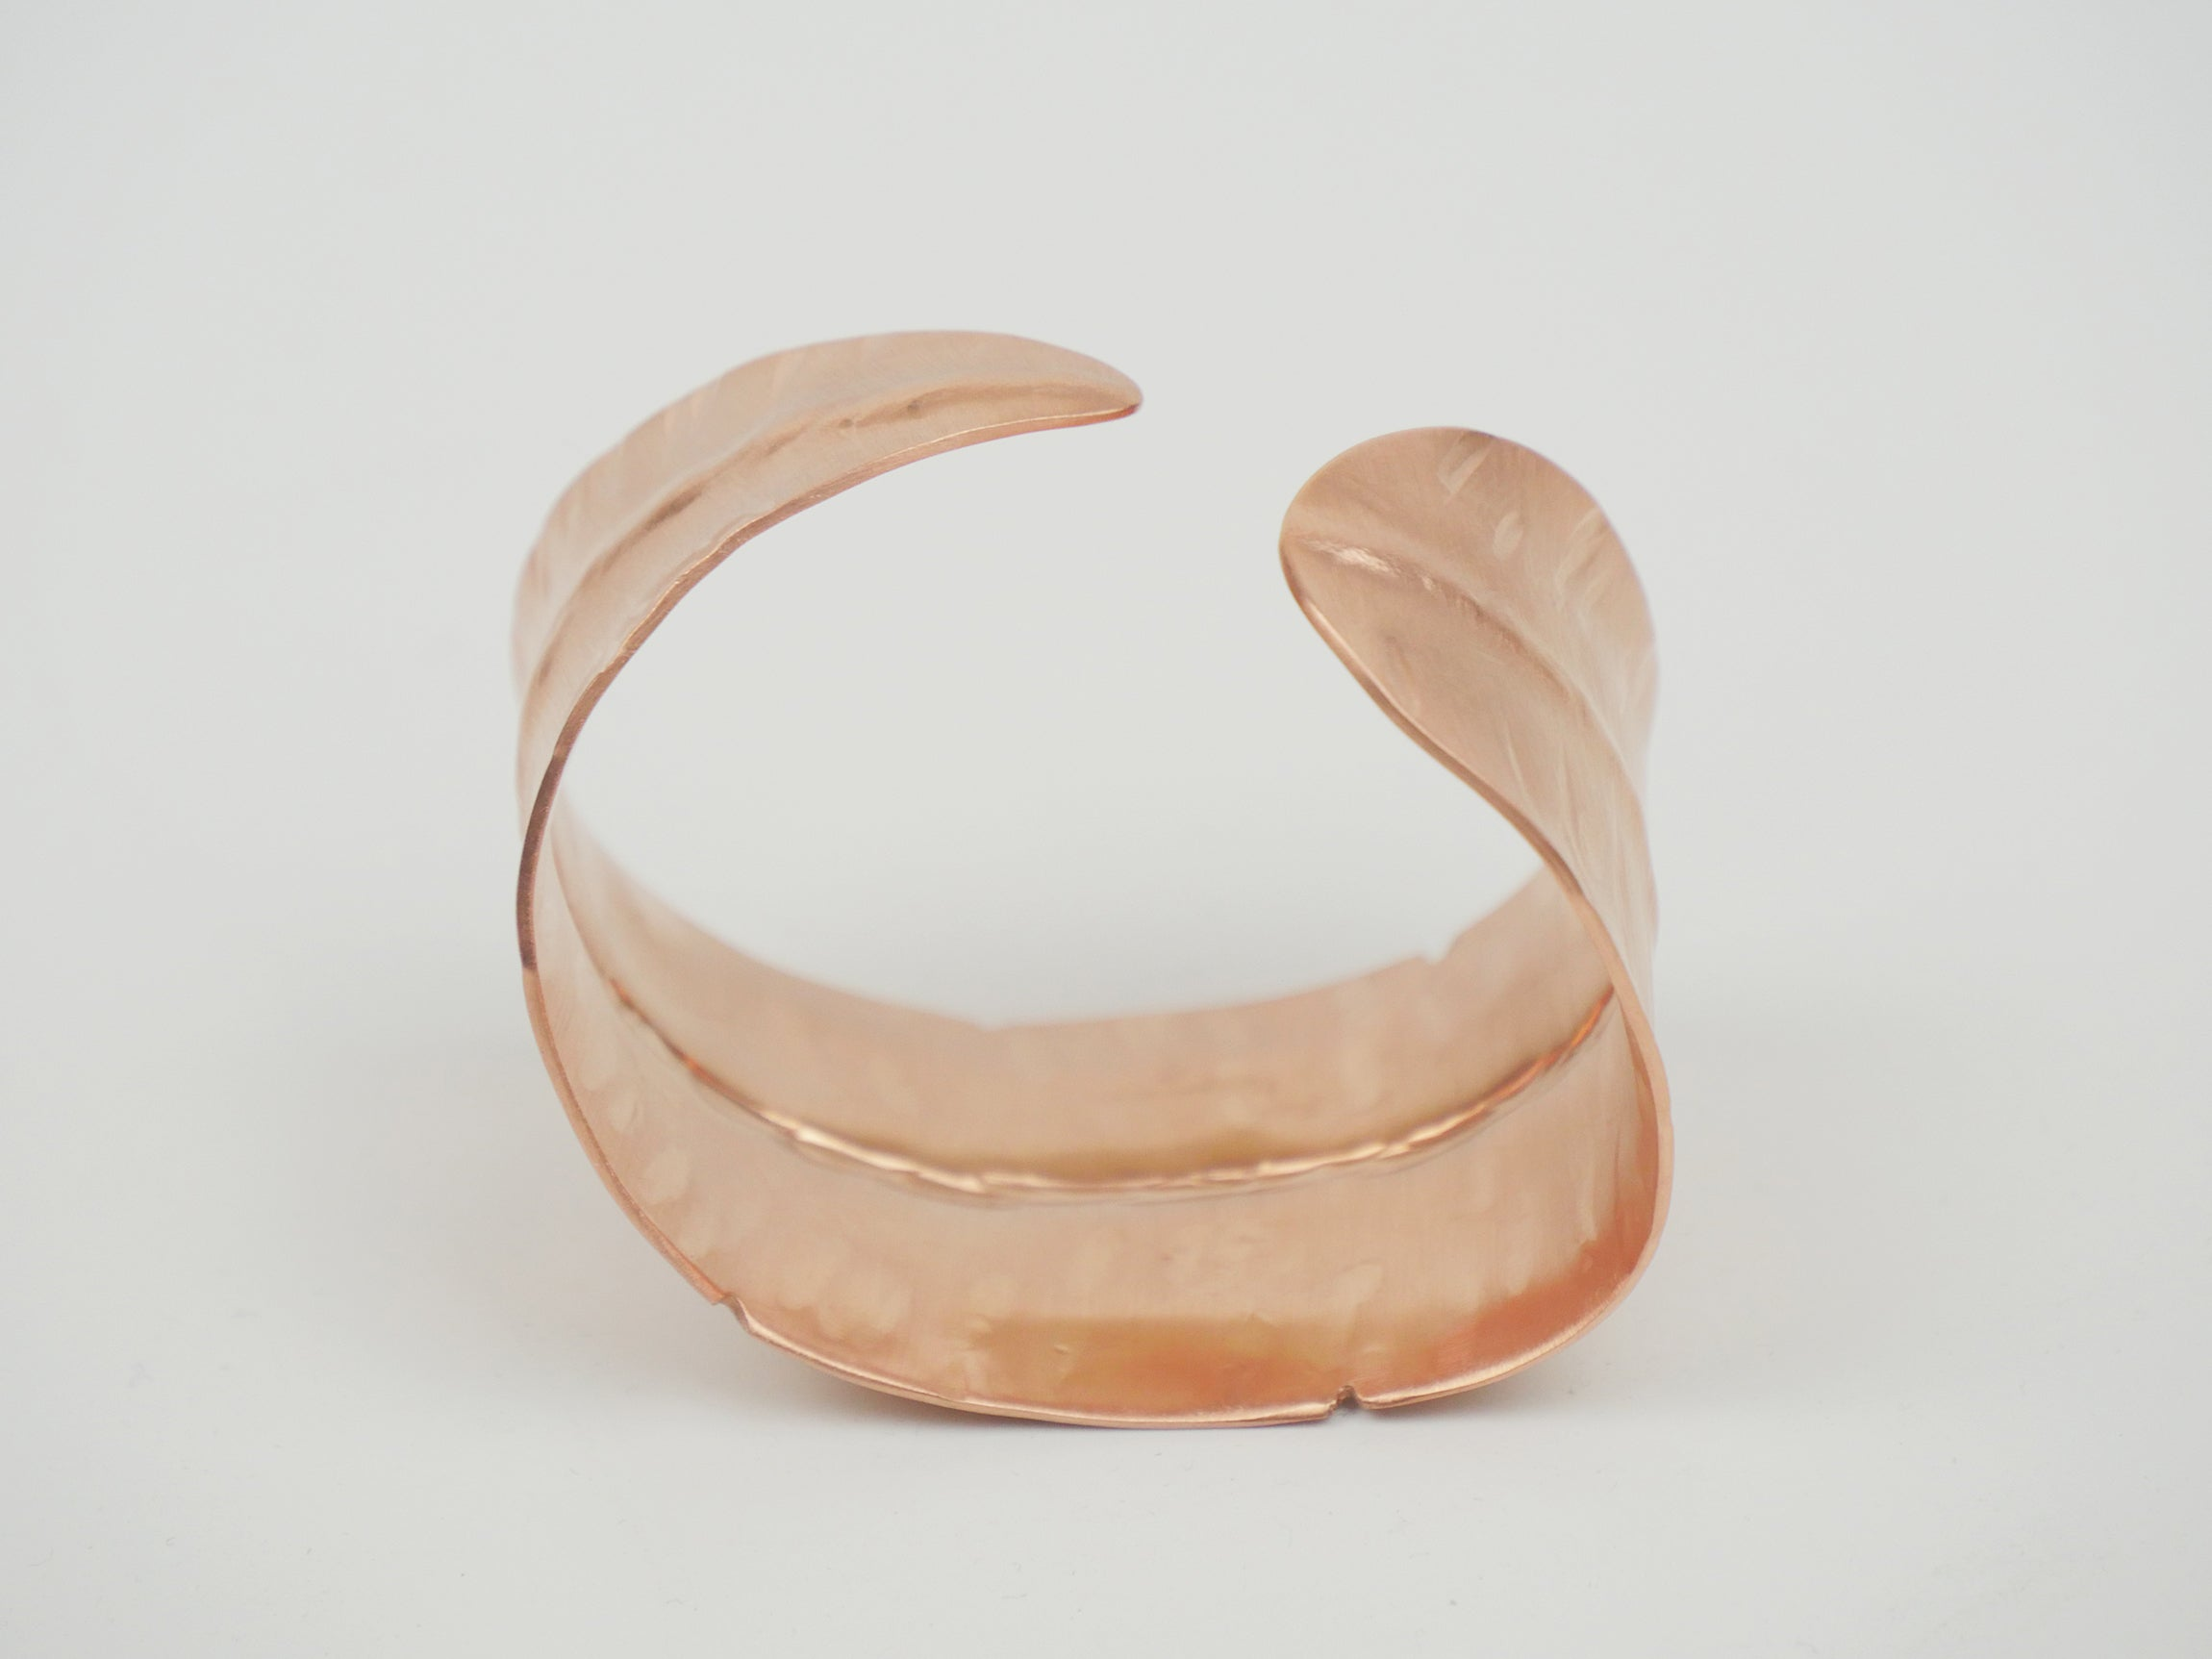 Feather Cuff Bracelet -Big C Copper, Local Coppersmith, American Made copper home goods, copper gifts, copper jewelry, 7th anniversary